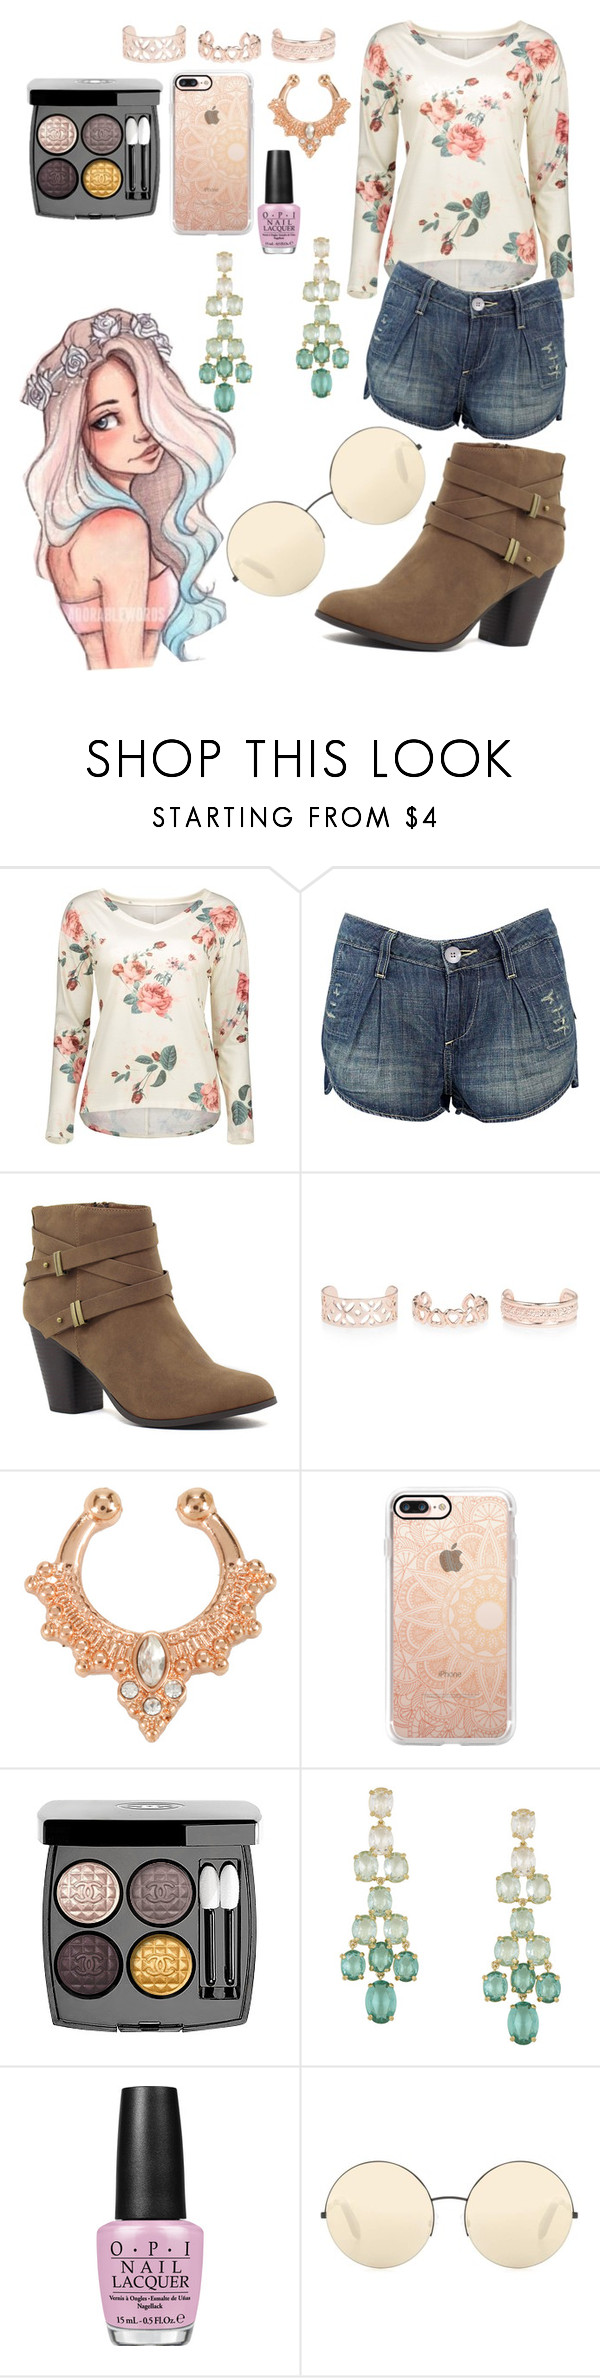 """""""Untitled #299"""" by kathrynrose42 ❤ liked on Polyvore featuring Babakul, New Look, Hot Topic, Casetify, Chanel, BCBGMAXAZRIA, OPI and Victoria Beckham"""